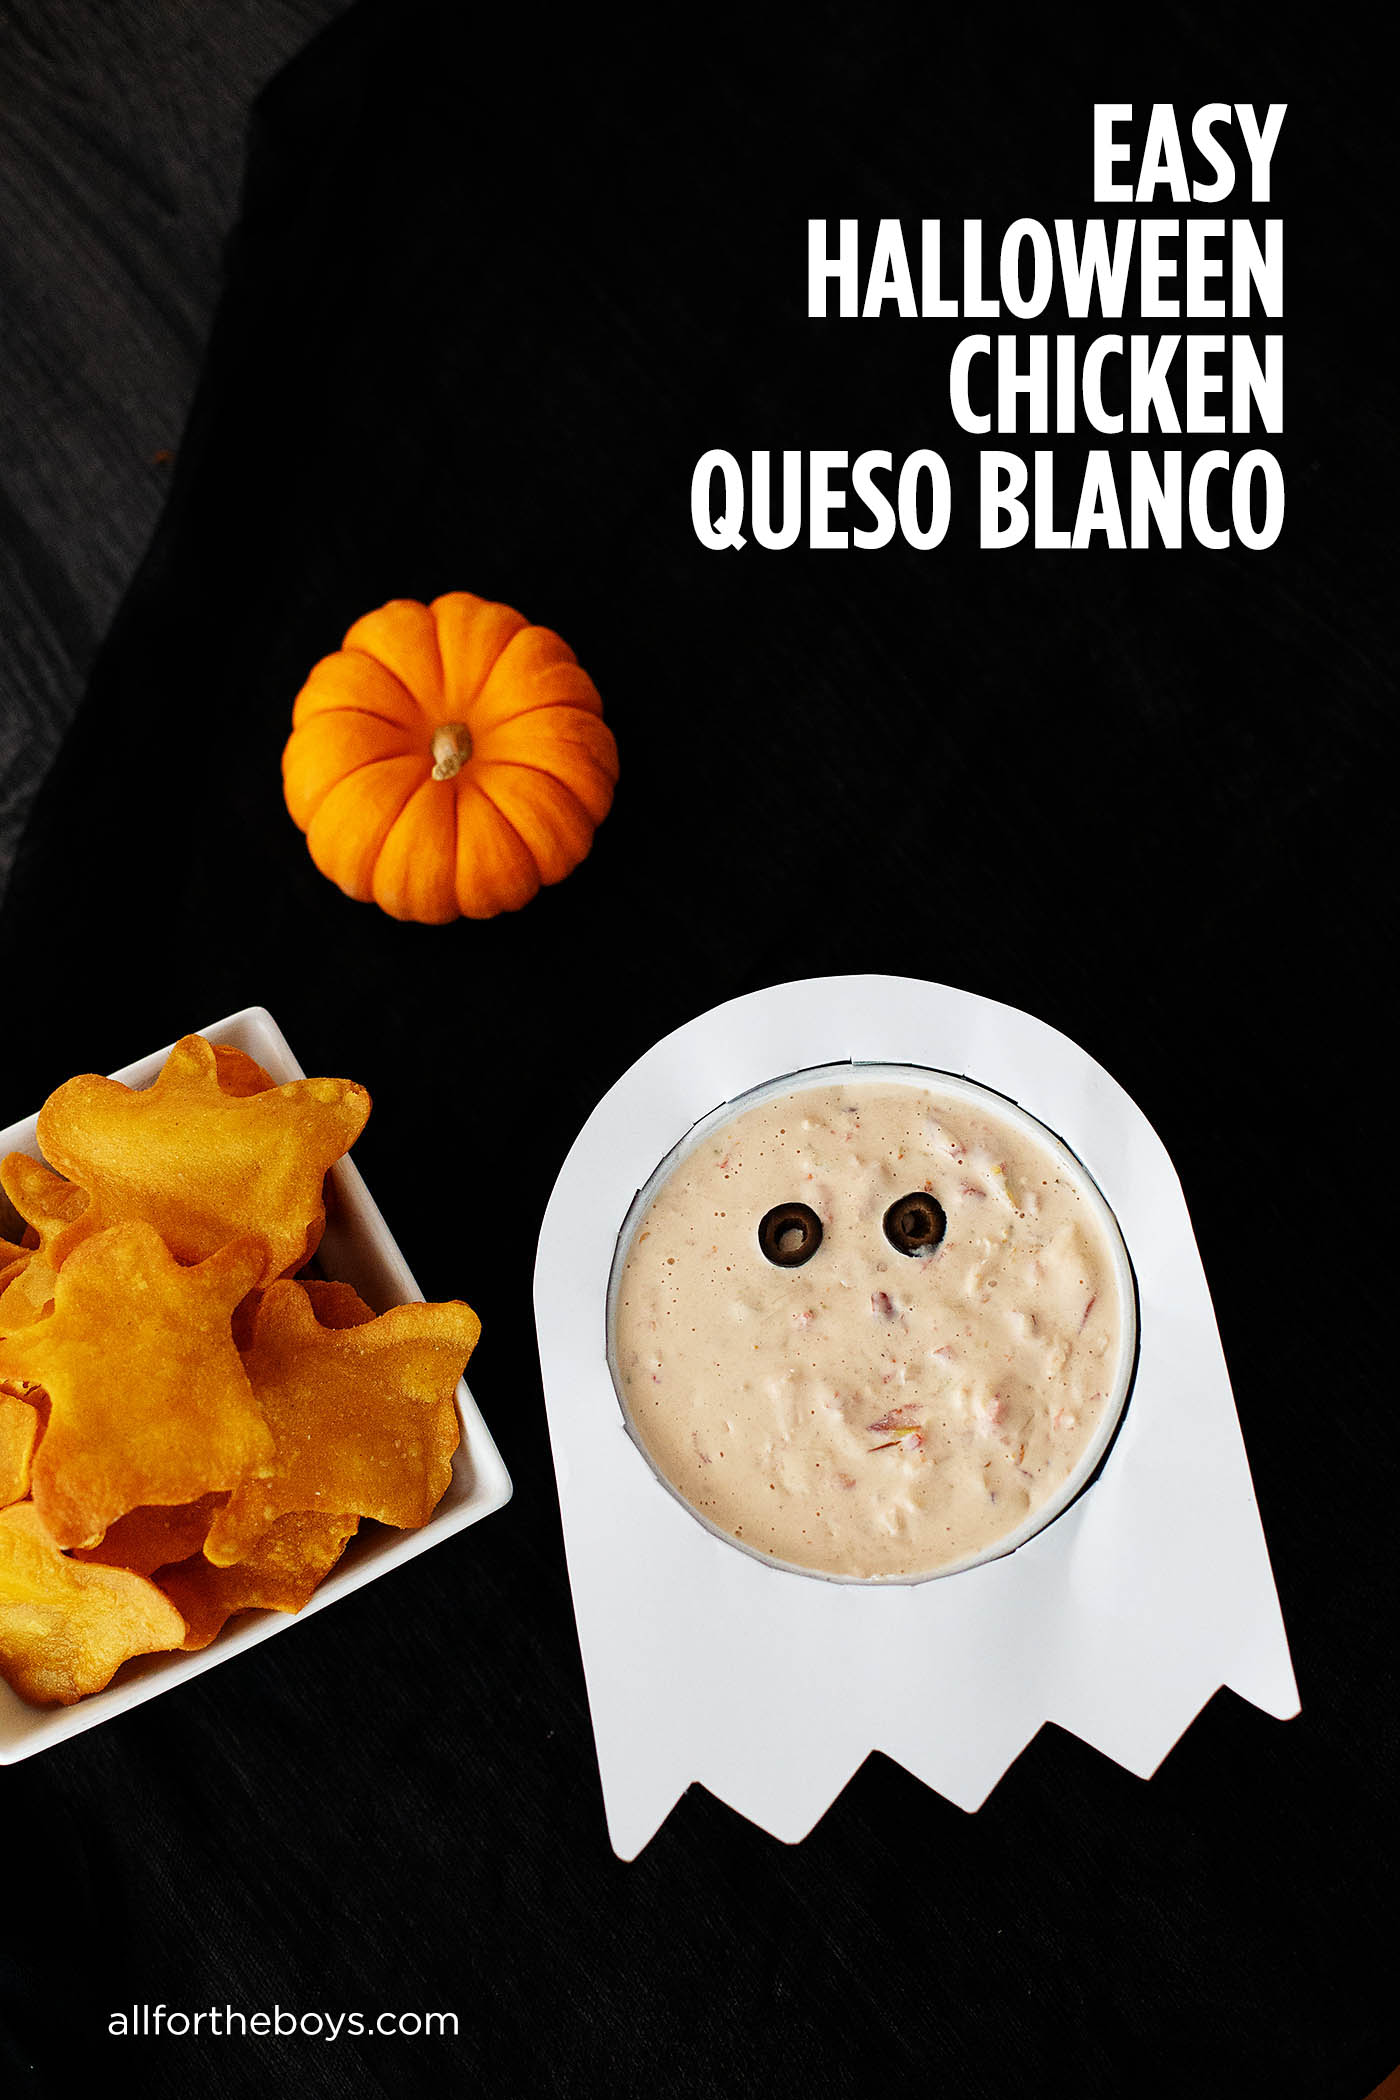 Easy Halloween Chicken Queso Blanco Recipe with a cute idea to decorate a bowl like a ghost!